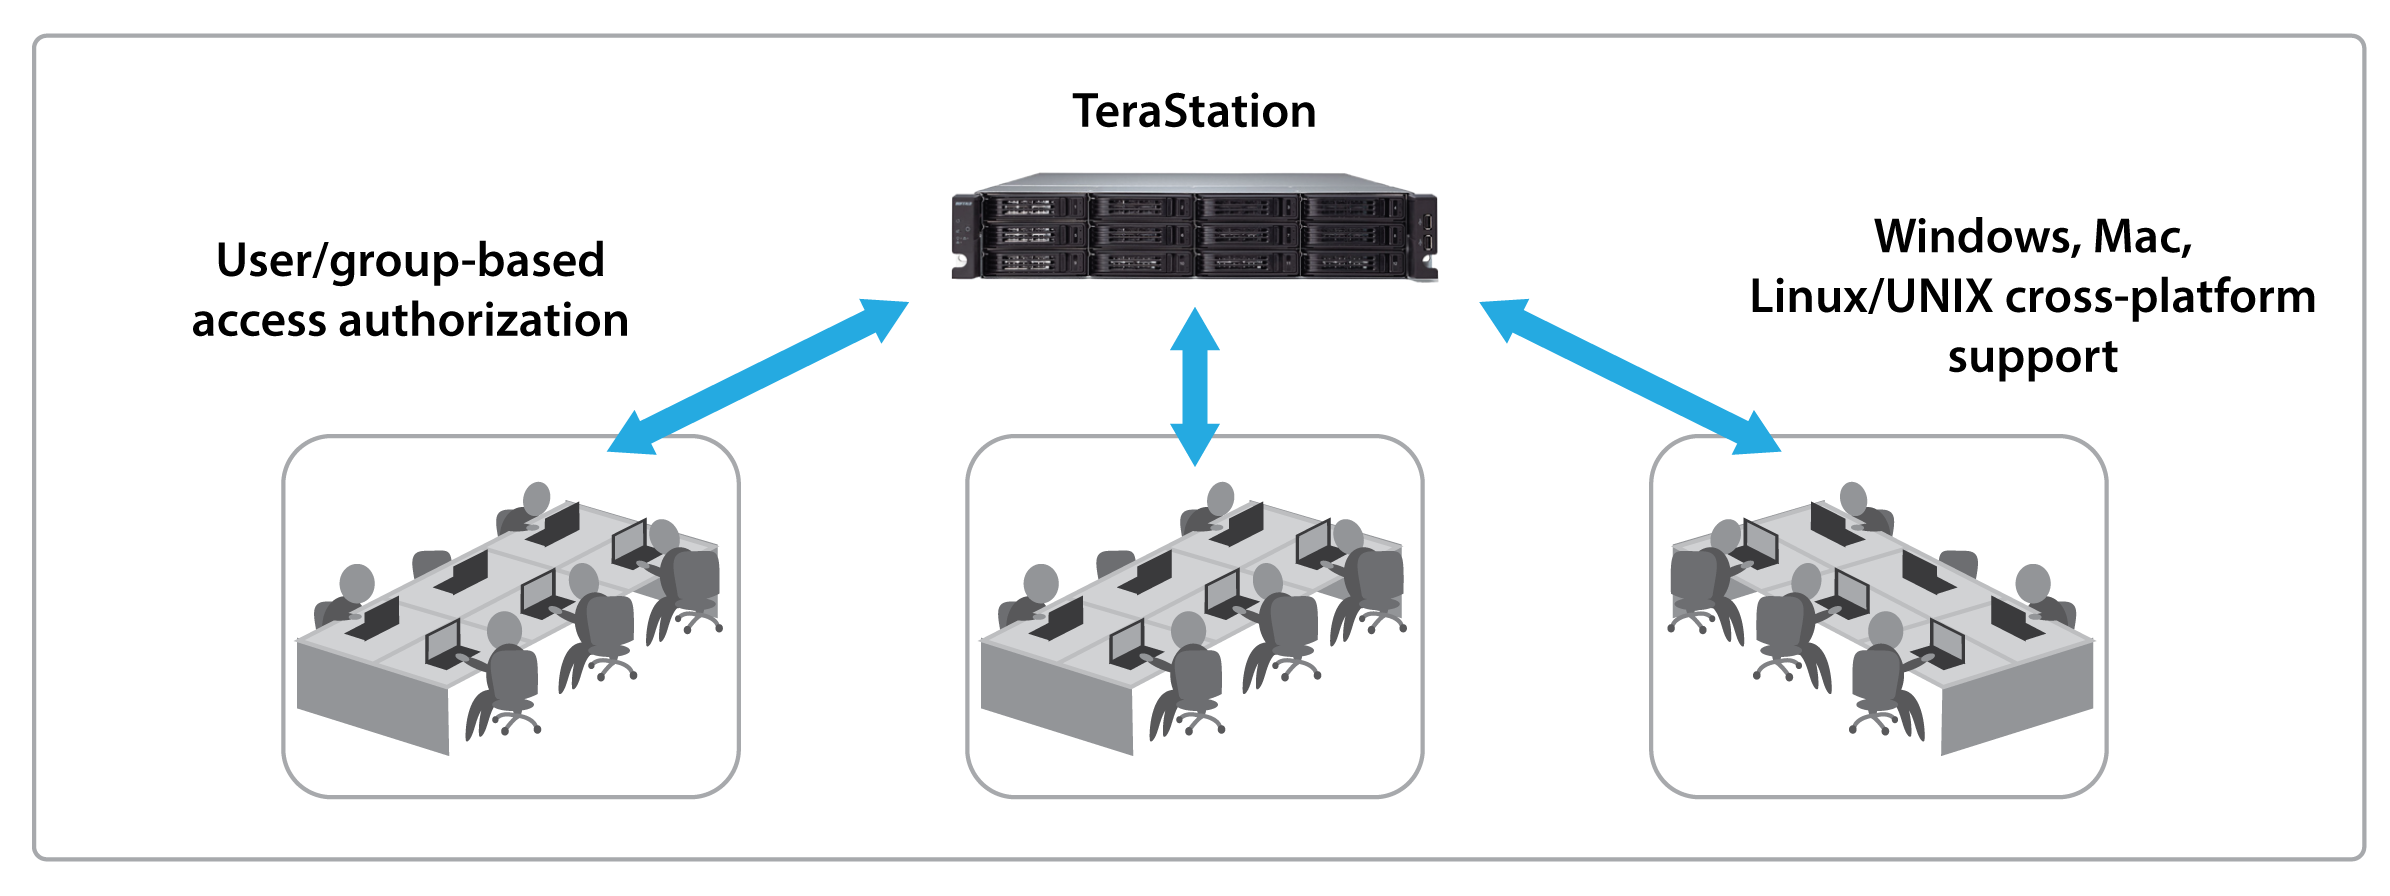 terastation 7000 reliable and secure network storage